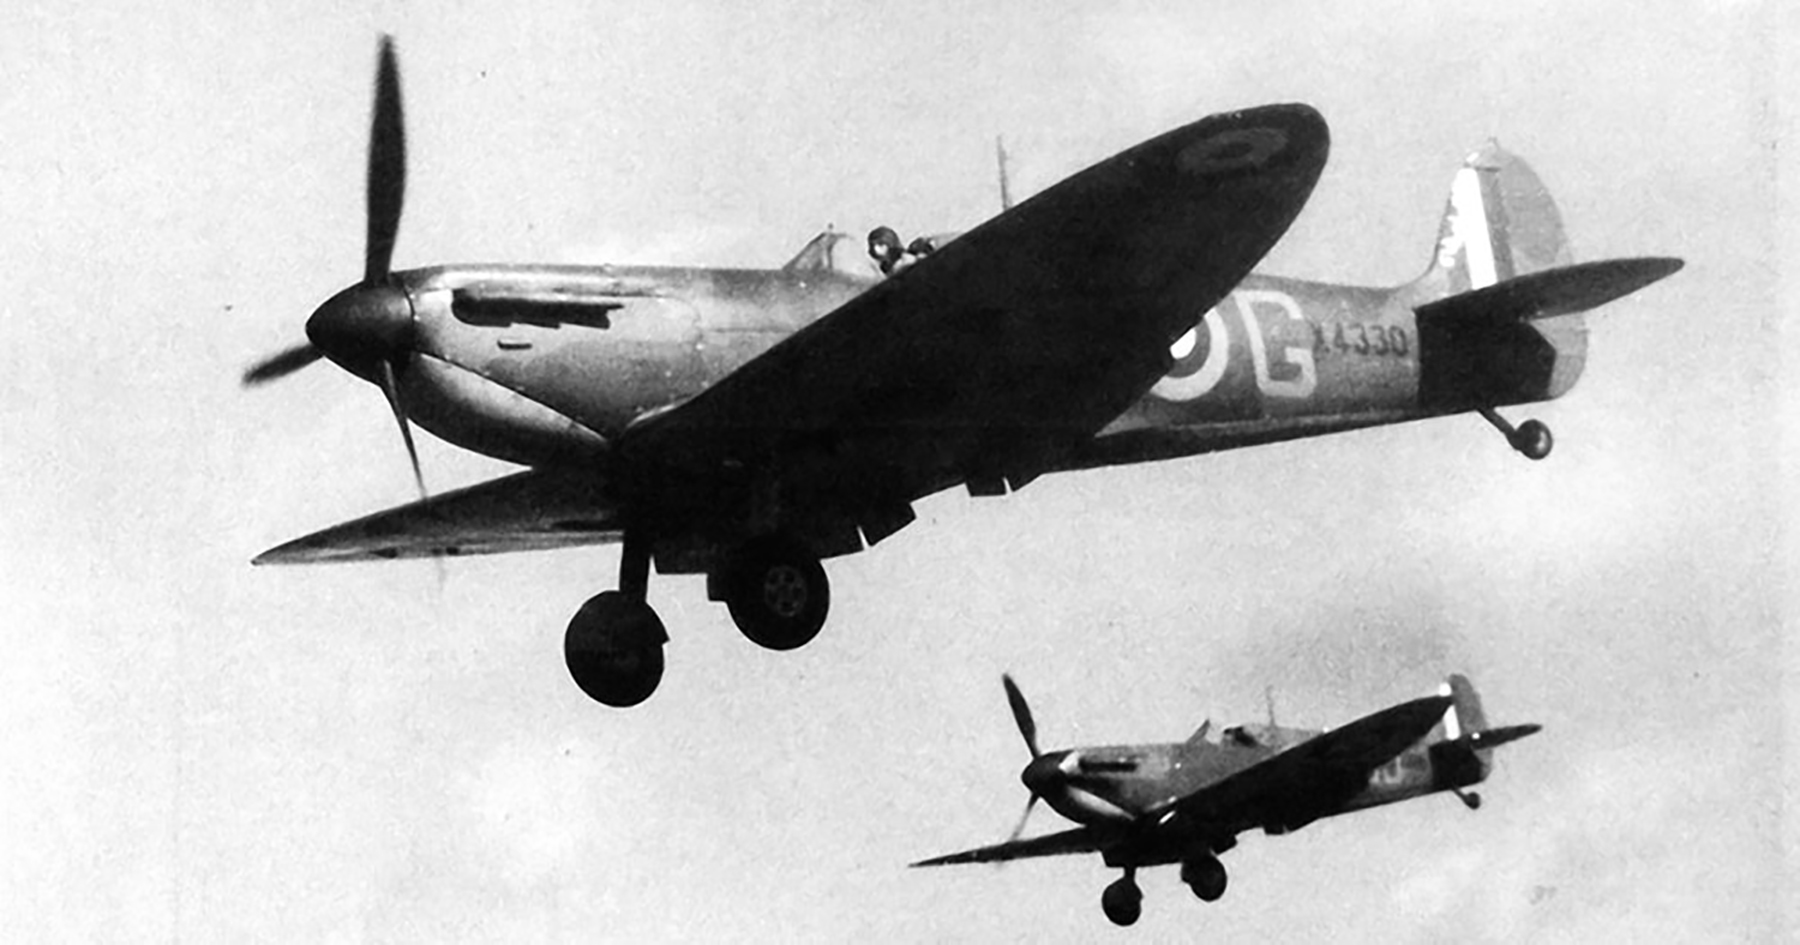 Spitfire MkIa RAF 19Sqn QVG X4330 flew with 19Sqn 609Sqn 66Sqn and 57OTU late 1940 41 01